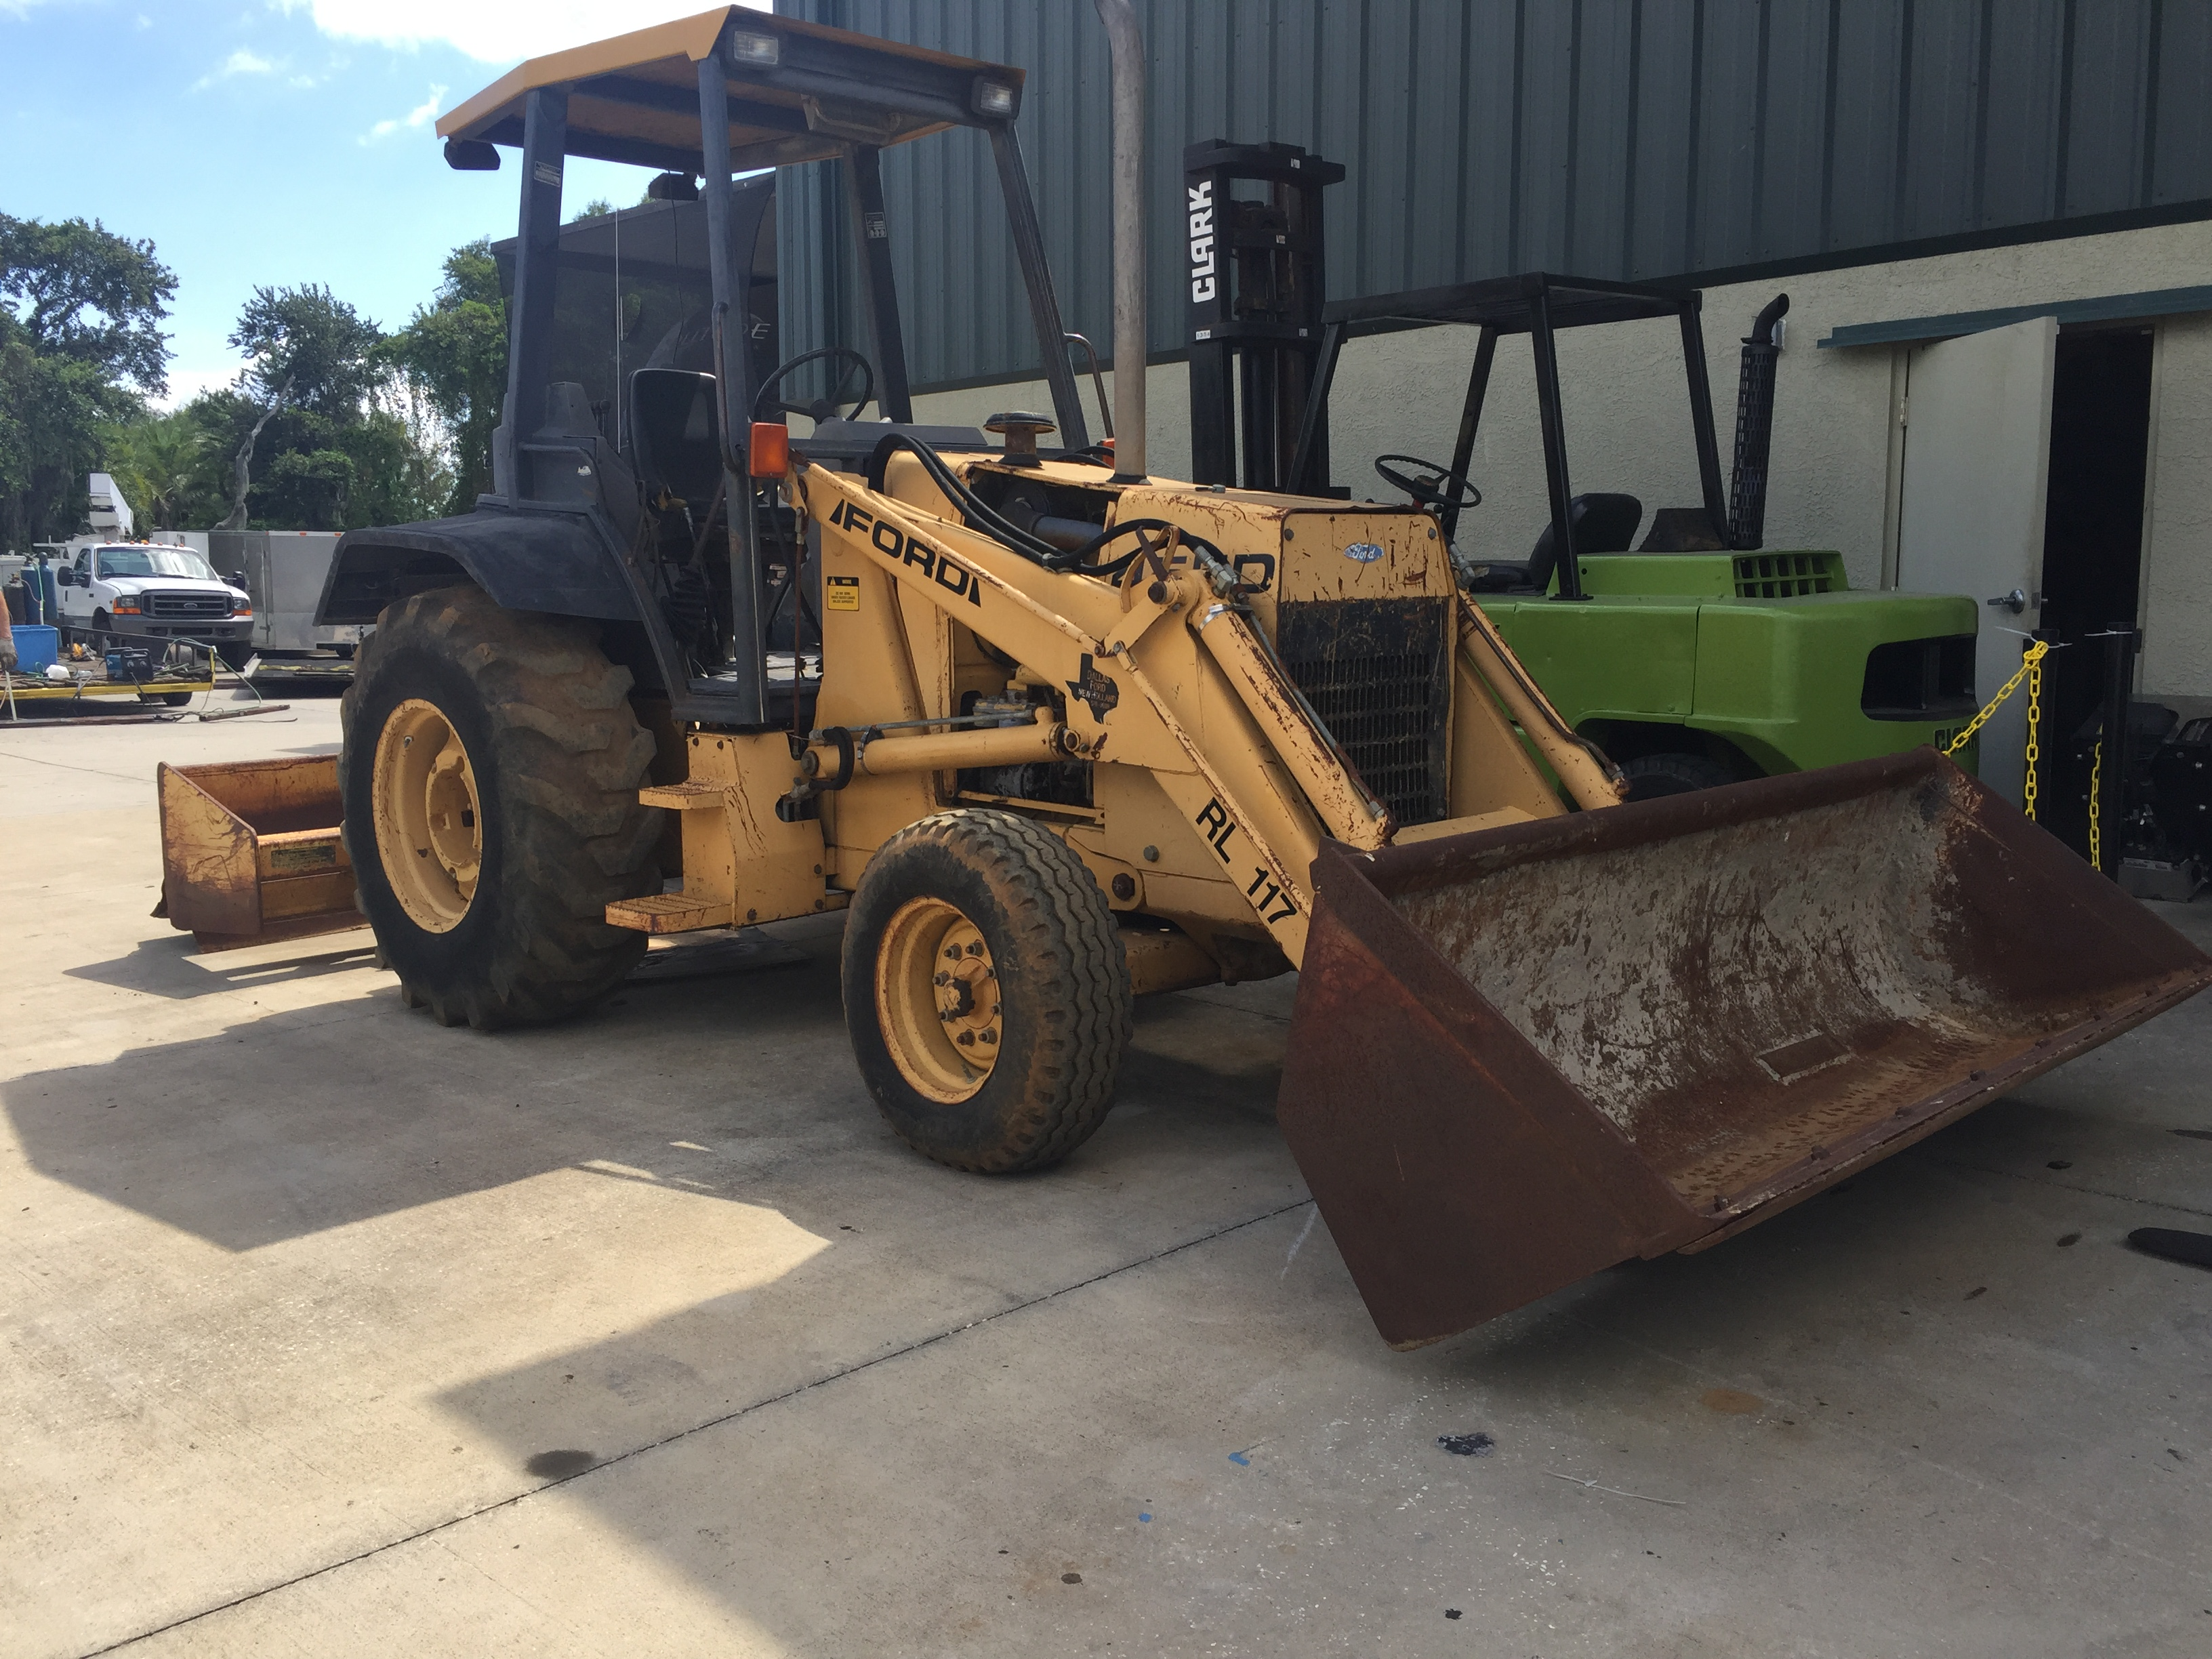 FORD 455D LOADER W/ BOX BLADE ATTACHMENT, 6,150 HOURS SHOWING